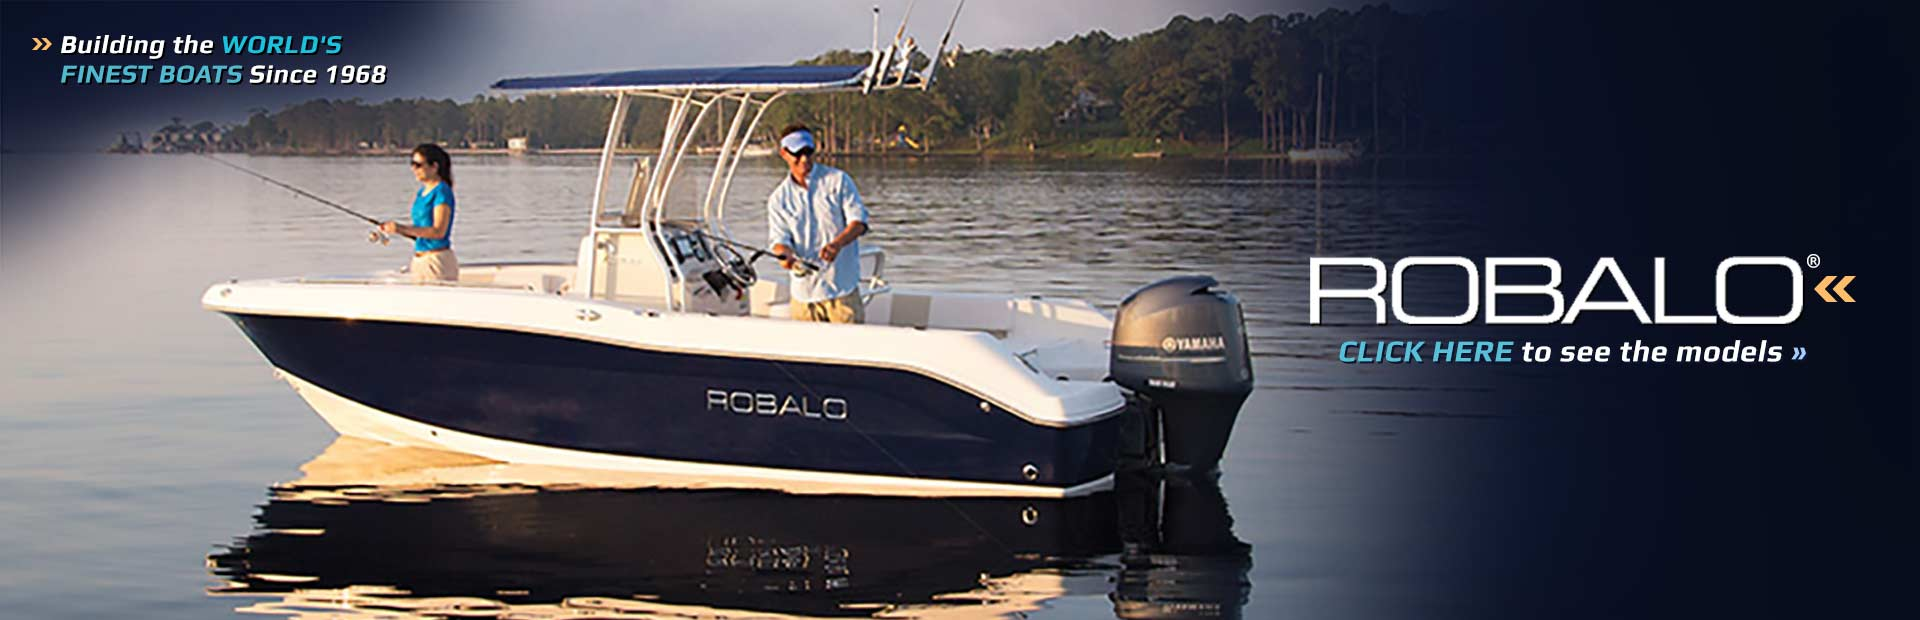 Robalo has been building the world's finest boats since 1968! Click here to view the showcase.